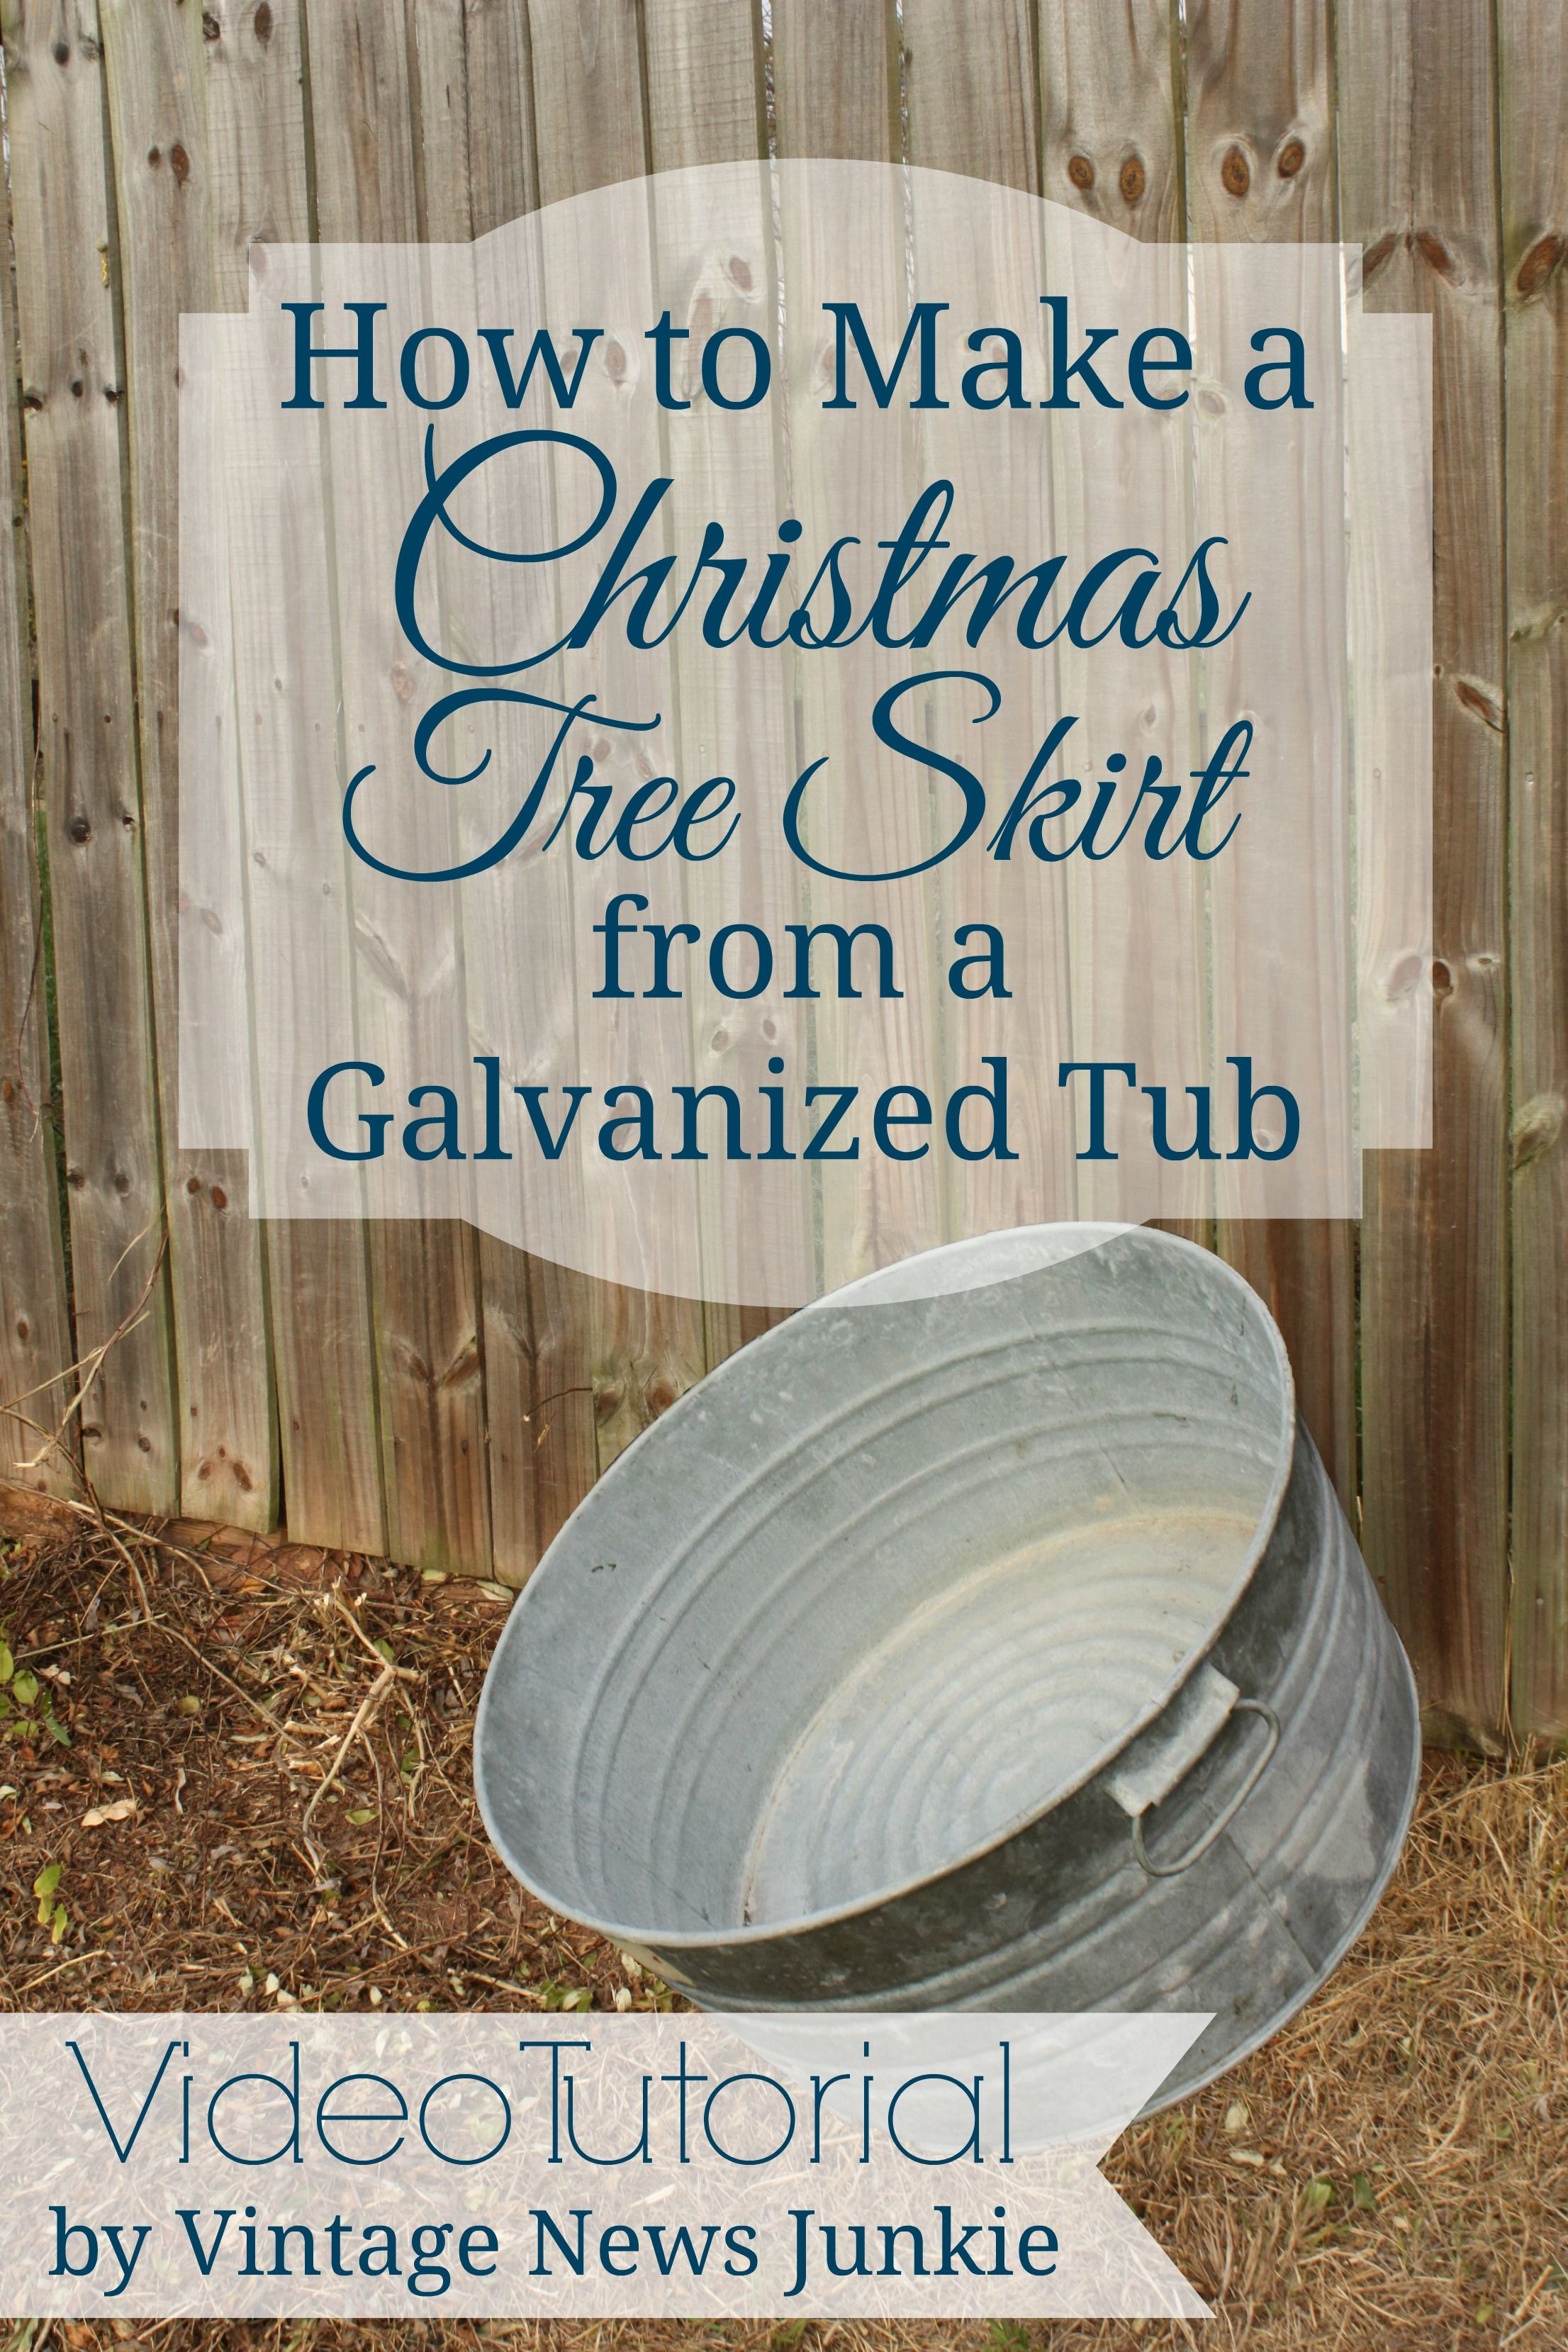 How to Make a Tree Skirt out of a Galvanized Tub Crate & Barrel